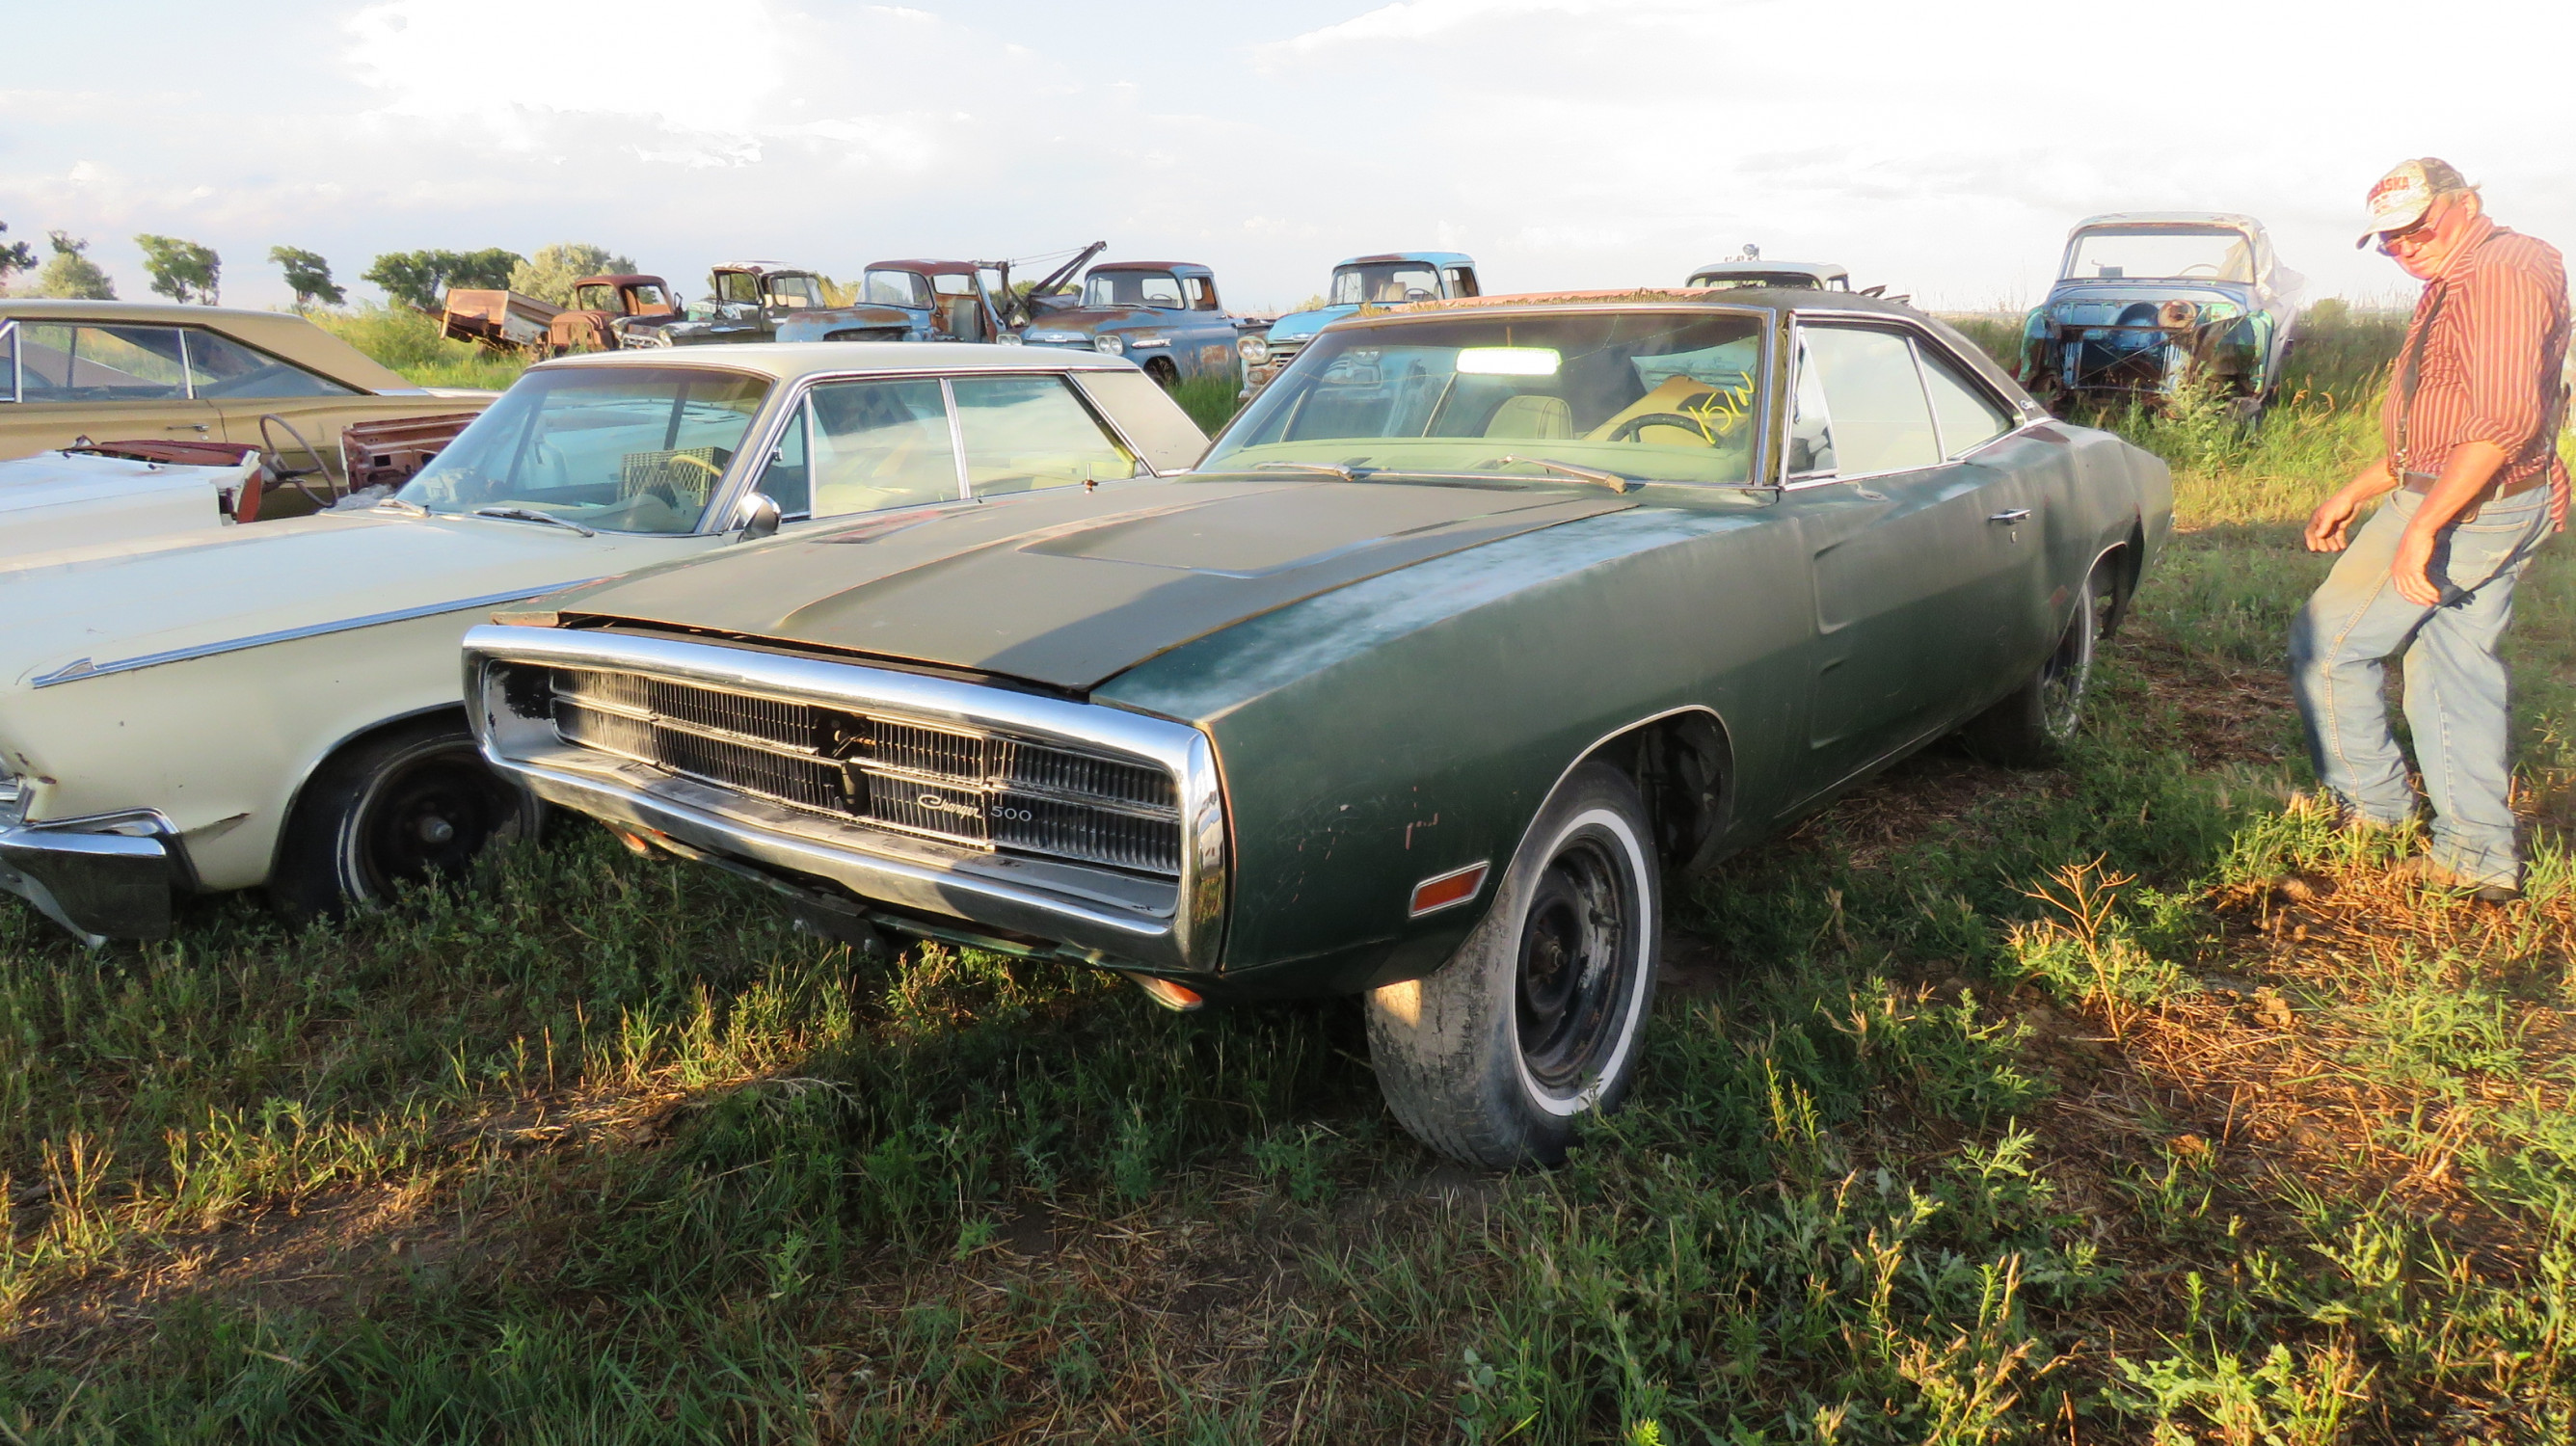 1970 DODGE CHARGER 500 ROLLING PROJECT - Image 1